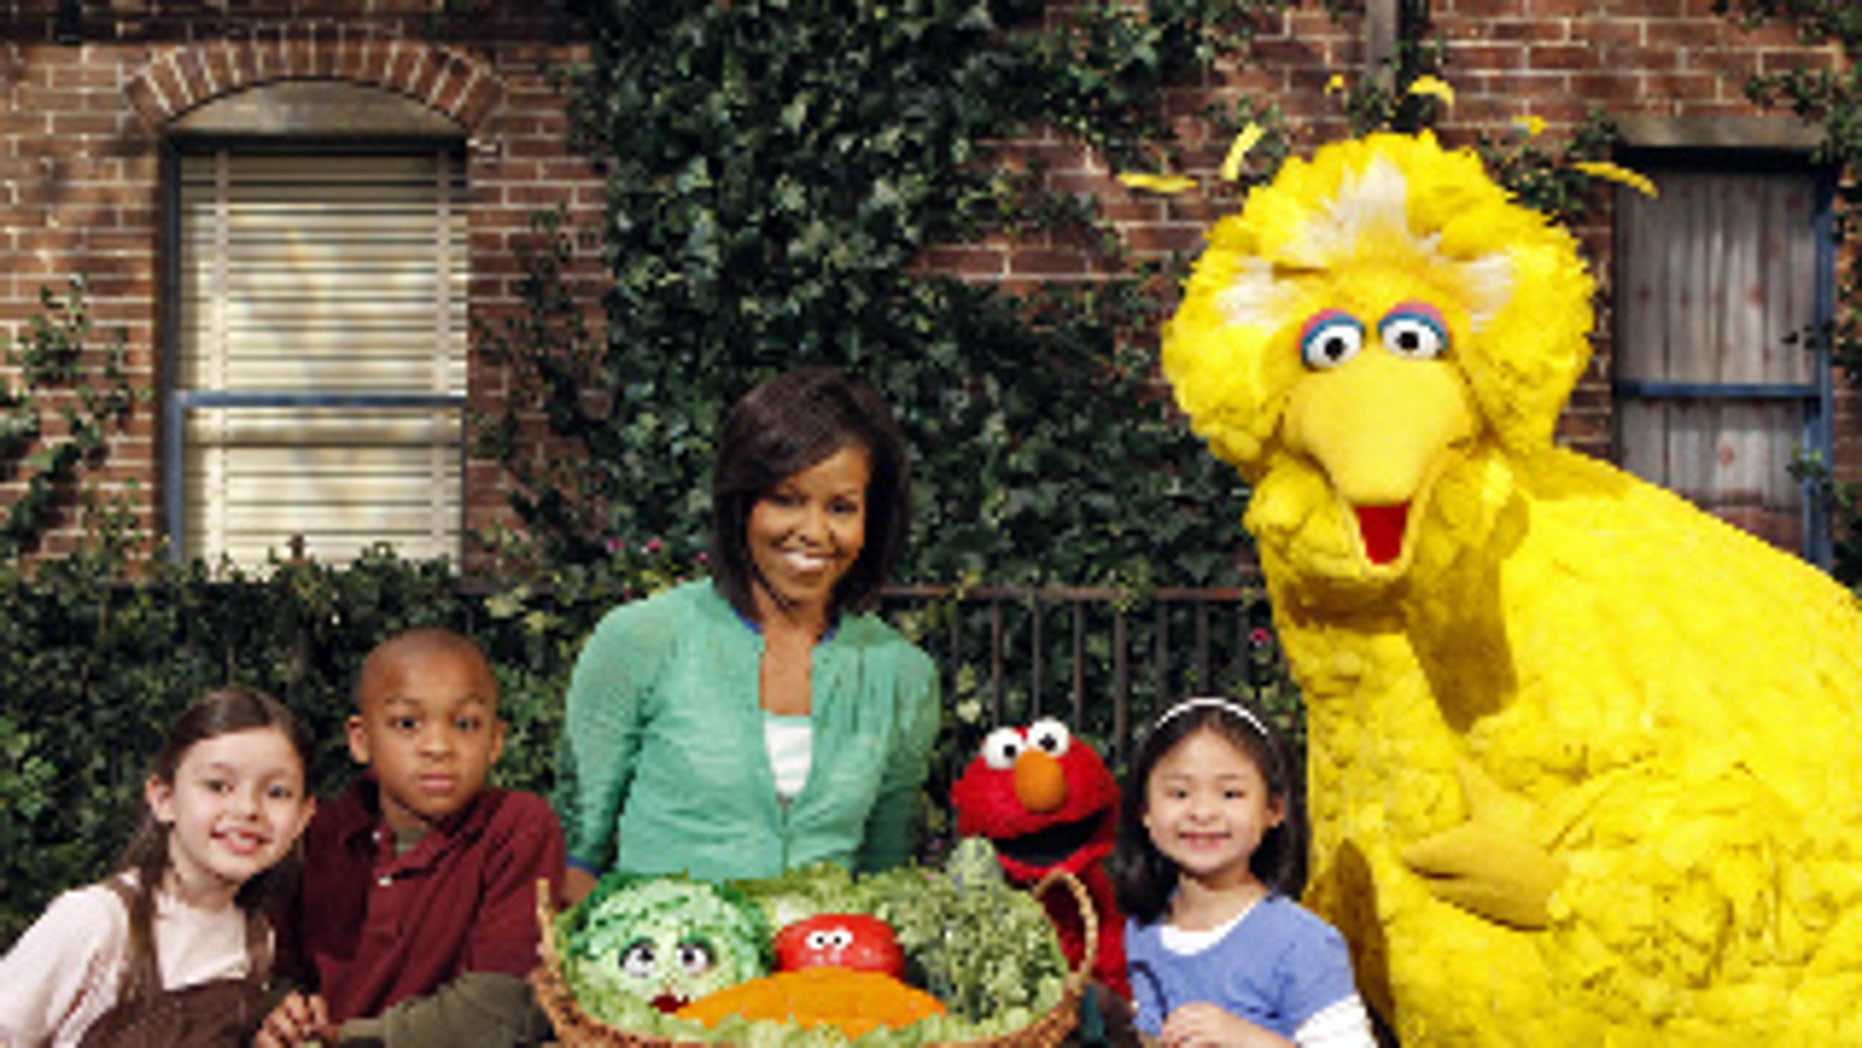 """This May 5, 2009 photo released by Sesame Workshop shows first lady Michelle Obama, third from left, with Big Bird, Elmo, Muppets & cast in """"Michelle Obama Plants A Garden"""" in Astoria, N.Y. Mrs. Obama appears on """"Sesame Street"""" Tuesday, Nov. 10, 2009, and recently taped an episode of """"Iron Chef America,"""" just two of the varied platforms she's been using lately to get her healthy-eating message out to the masses. (AP Photo/Sesame Workshop, Richard Termine)"""